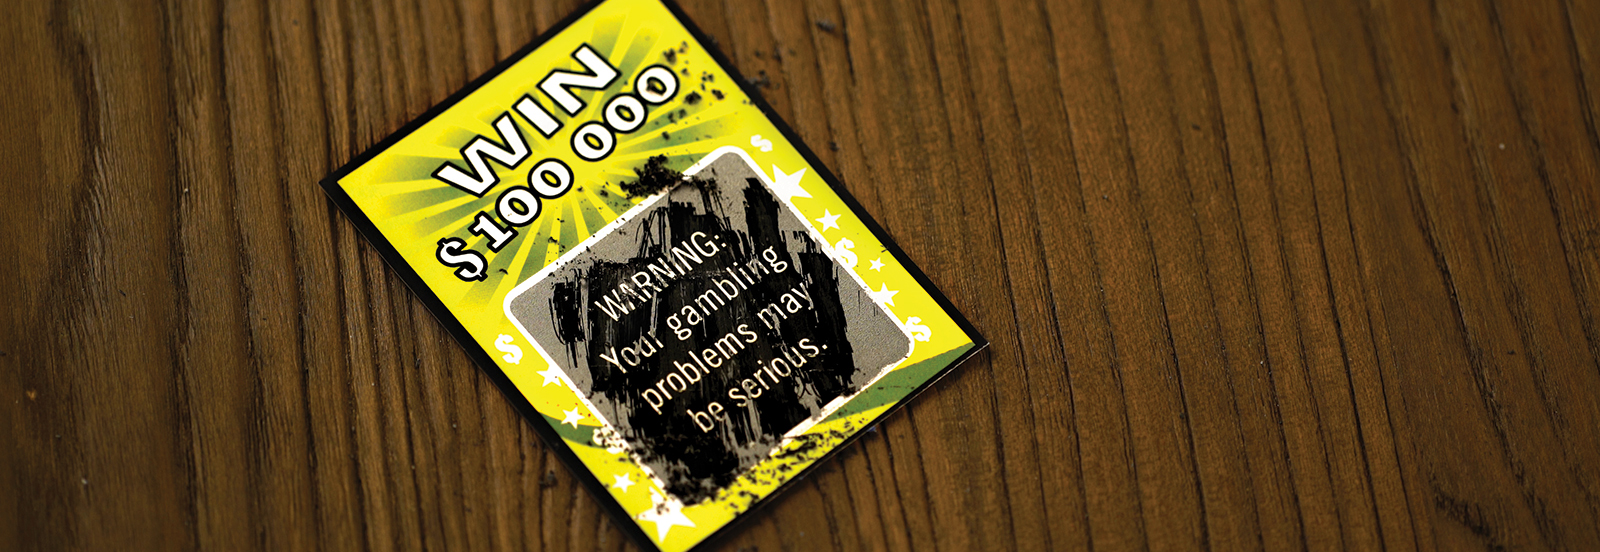 """scratch off card reads """"Warning: Your gambling problems may be serious."""""""